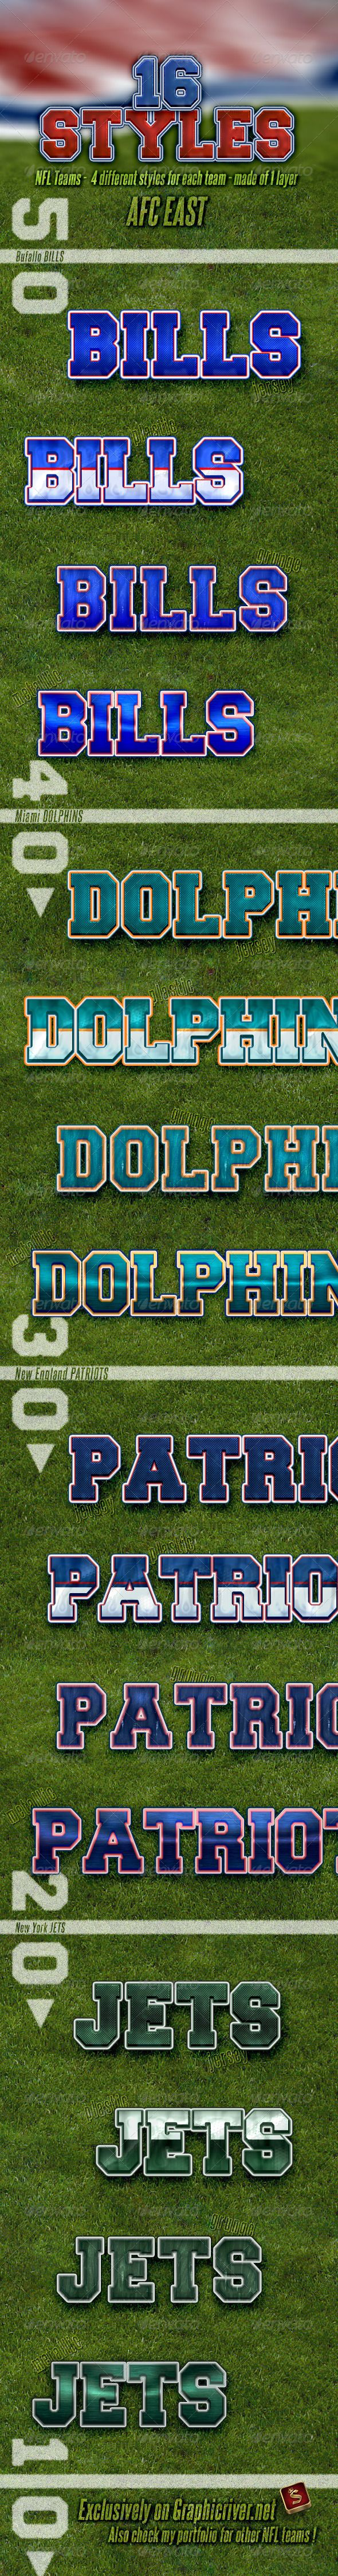 NFL Football Styles - AFC East #GraphicRiver NFL Football Photoshop Layer Styles – Part 1 AFC EAST NFL Football Photoshop layer styles –are the best for your titles, buttons, shapes, etc. Styles are usable for any Text and it also looks good on Shapes or Buttons. Don't forget to check all parts of NFL Team Styles NFL Football Layer Styles – Features All styles are made of 1 layer only Unique Styles Applicable with just one click Unique look and clean design Can be used anywhere ASL and PSD…